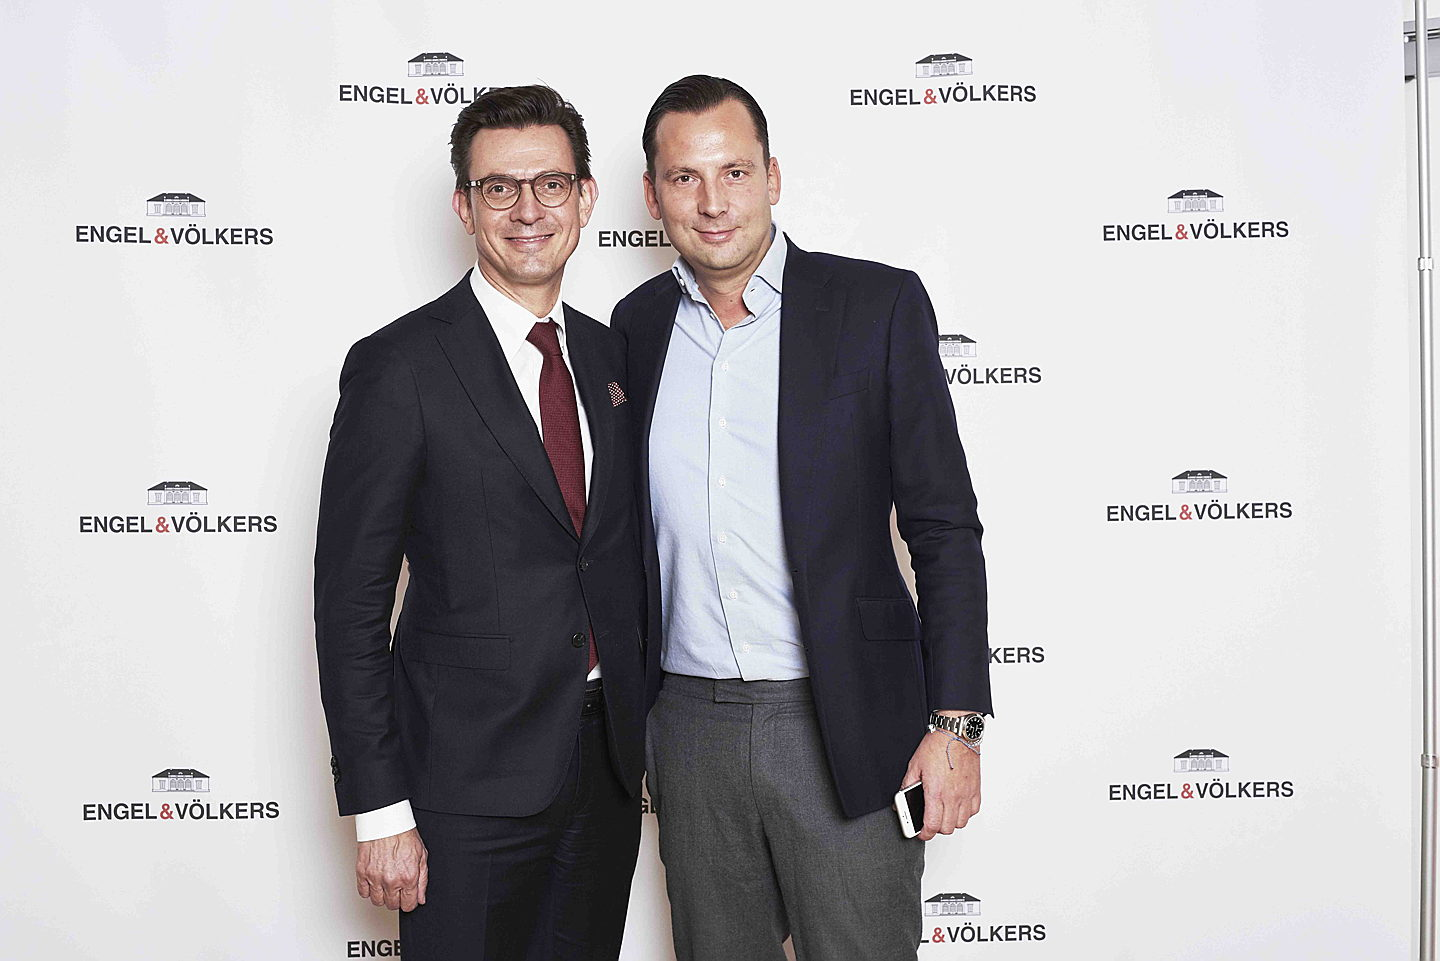 Sintra - Kai Enders, Member of the Board Franchise Engel & Völkers AG_Christian von Gottberg, Managing Director Engel & Völkers Berlin(c)Valeria Mitelman.jpg